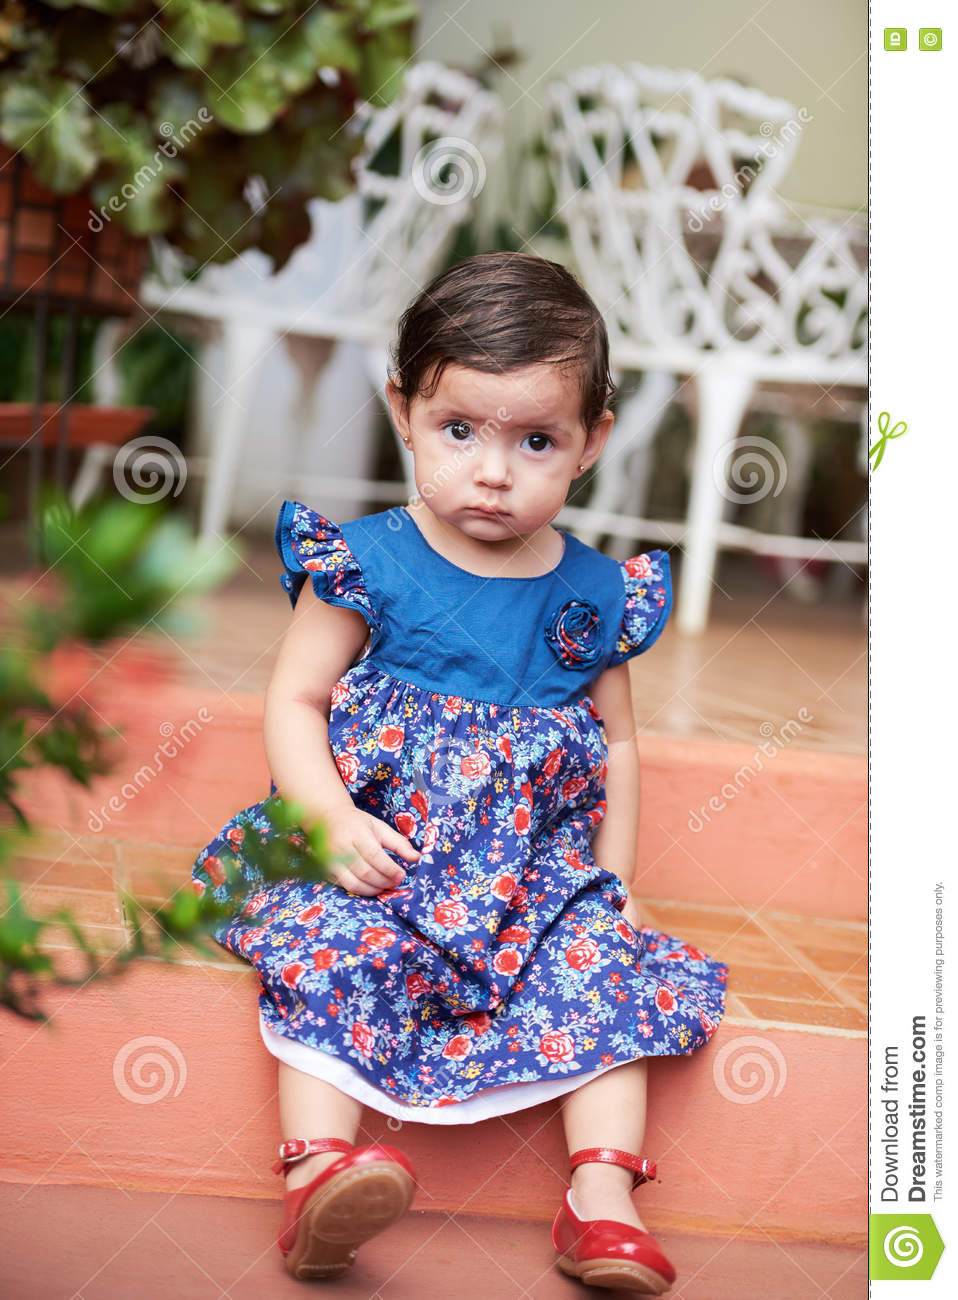 cdadc09ce83 Small Girl Sit Steps Stock Images - Download 84 Royalty Free Photos